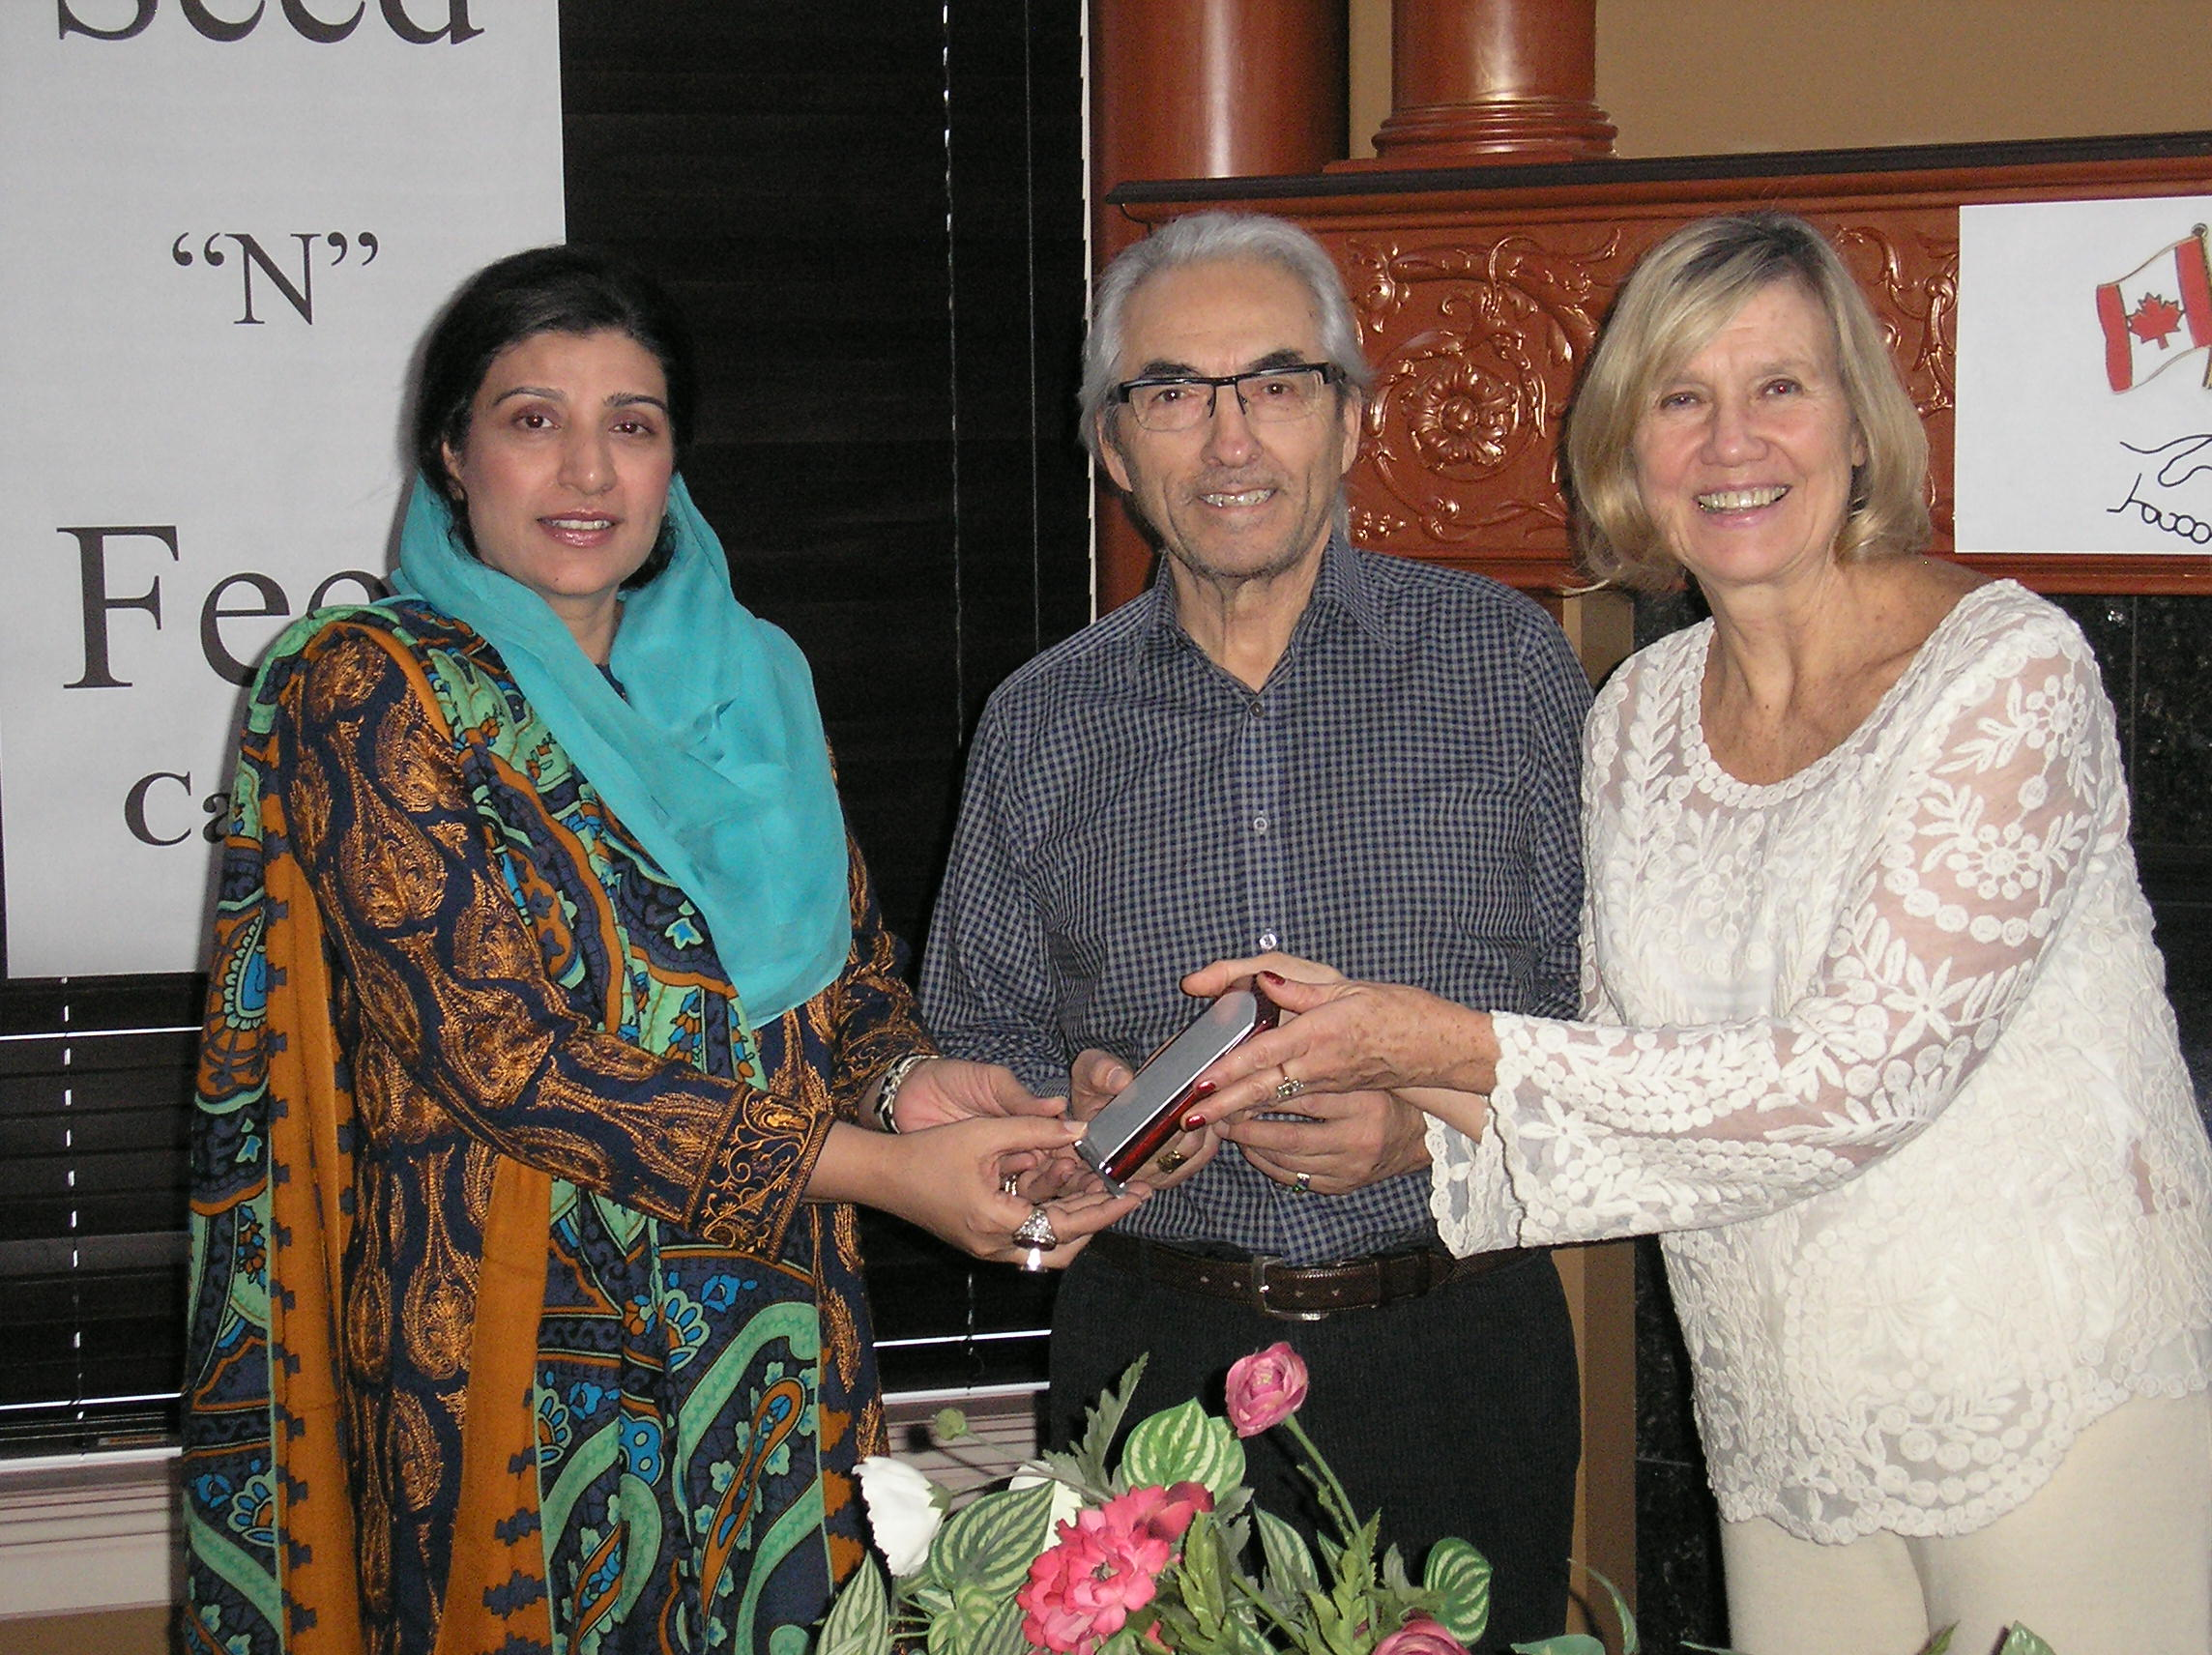 An award from Kathleen Mahoney and Phil Fontaine, the two senior directors of Seed and Feed Program. Calgary, Canada